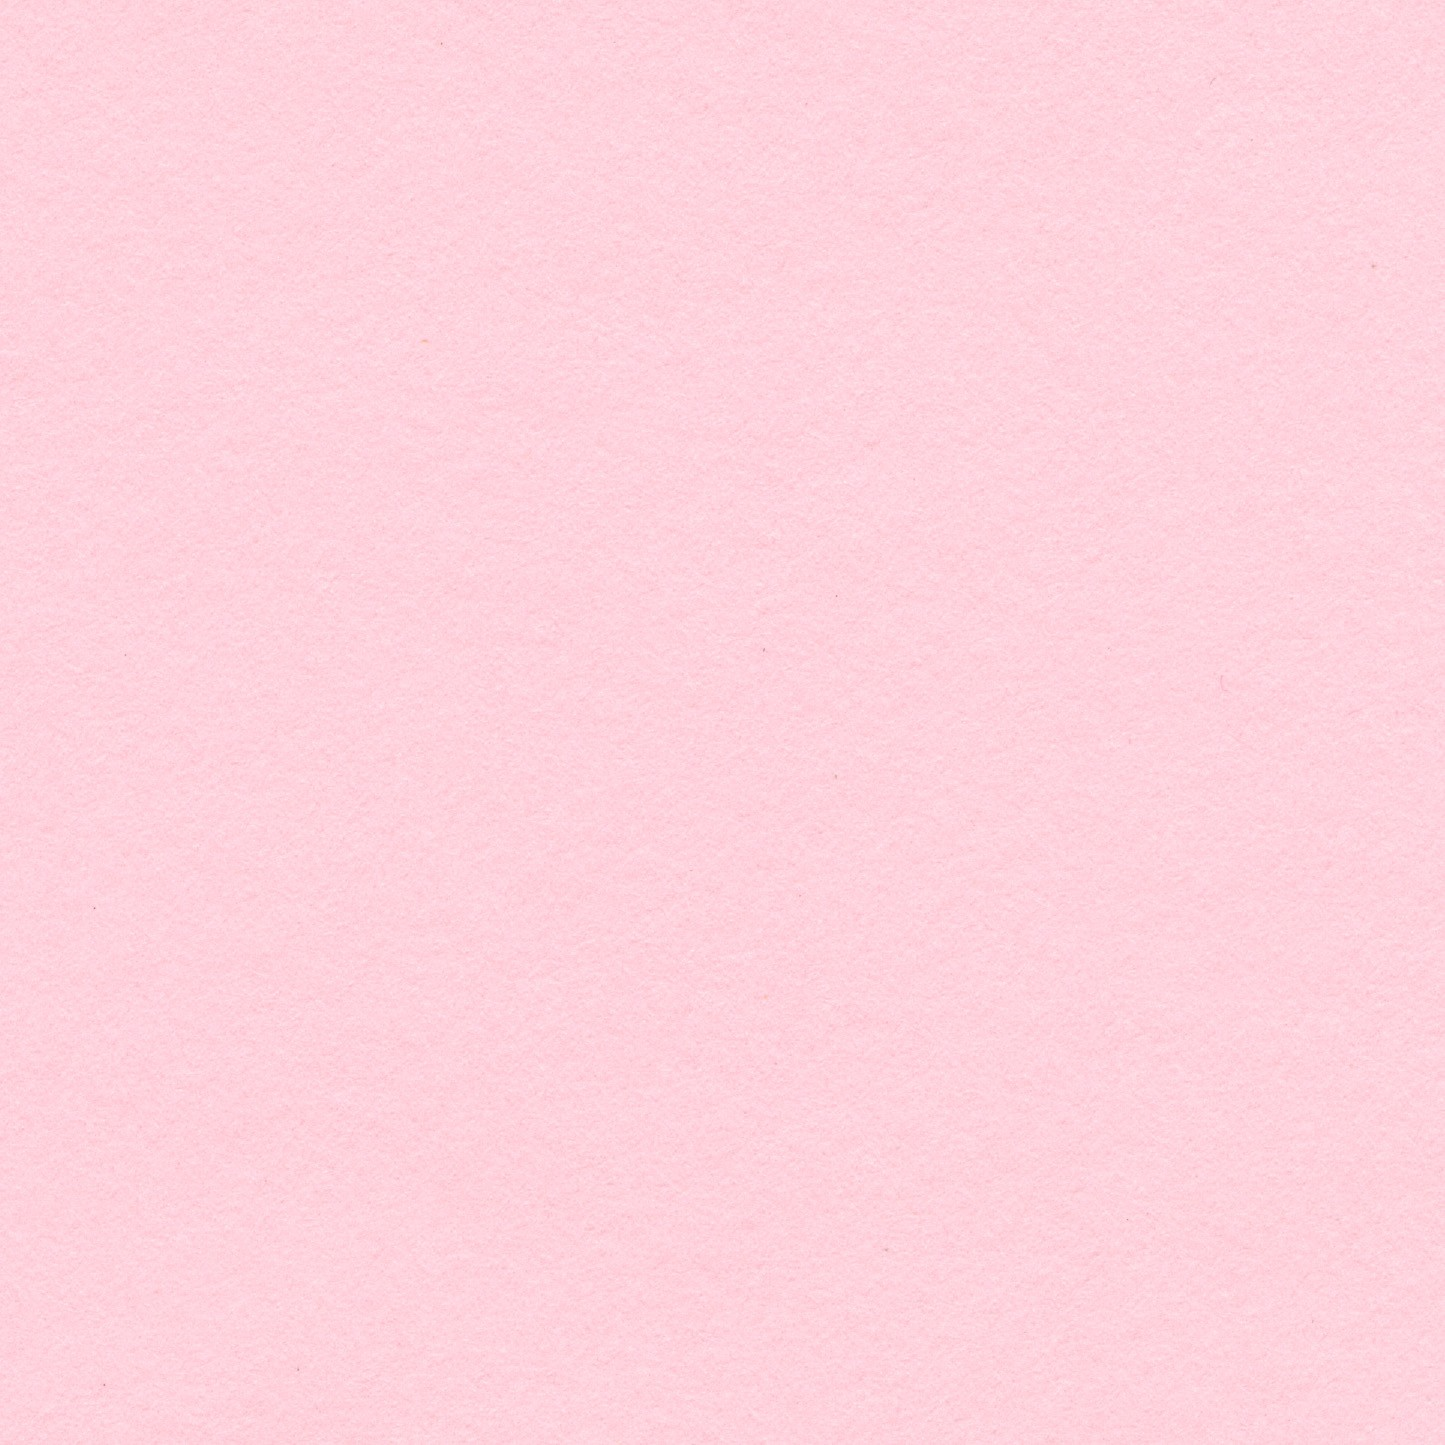 Pink - Baby 135gsm